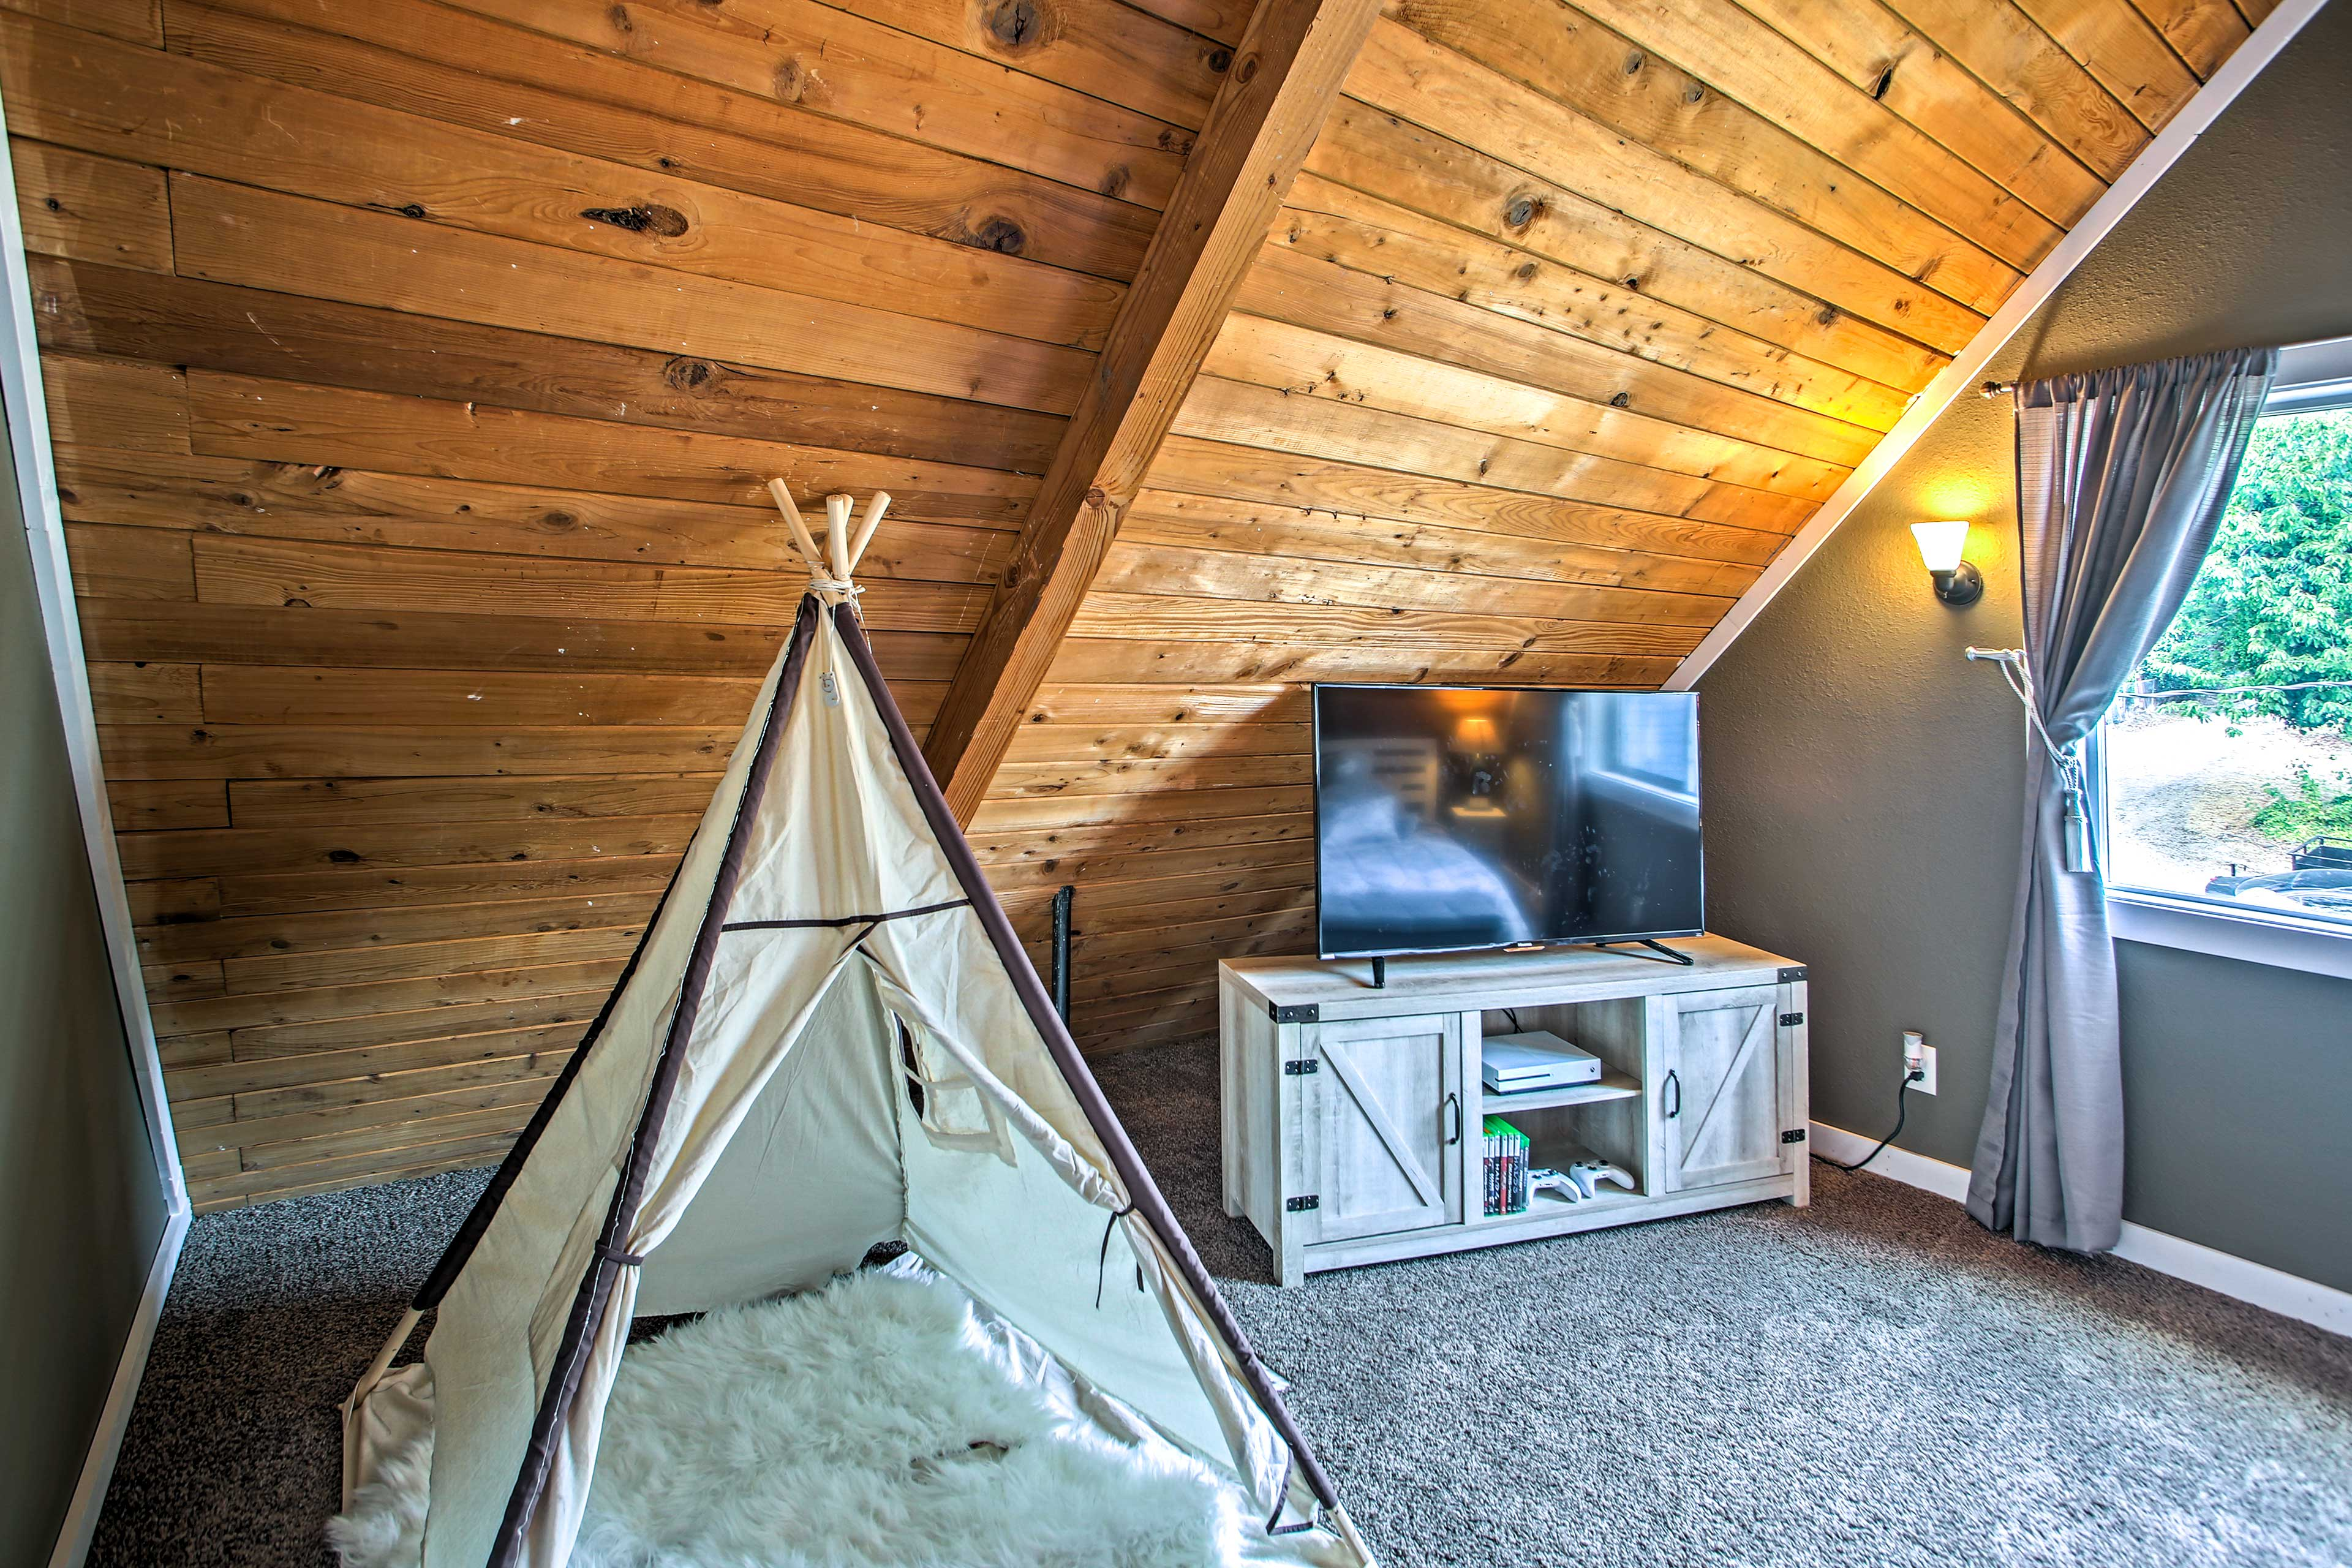 Bedroom 3 | Teepee Hut | NOTE: XboX has been removed